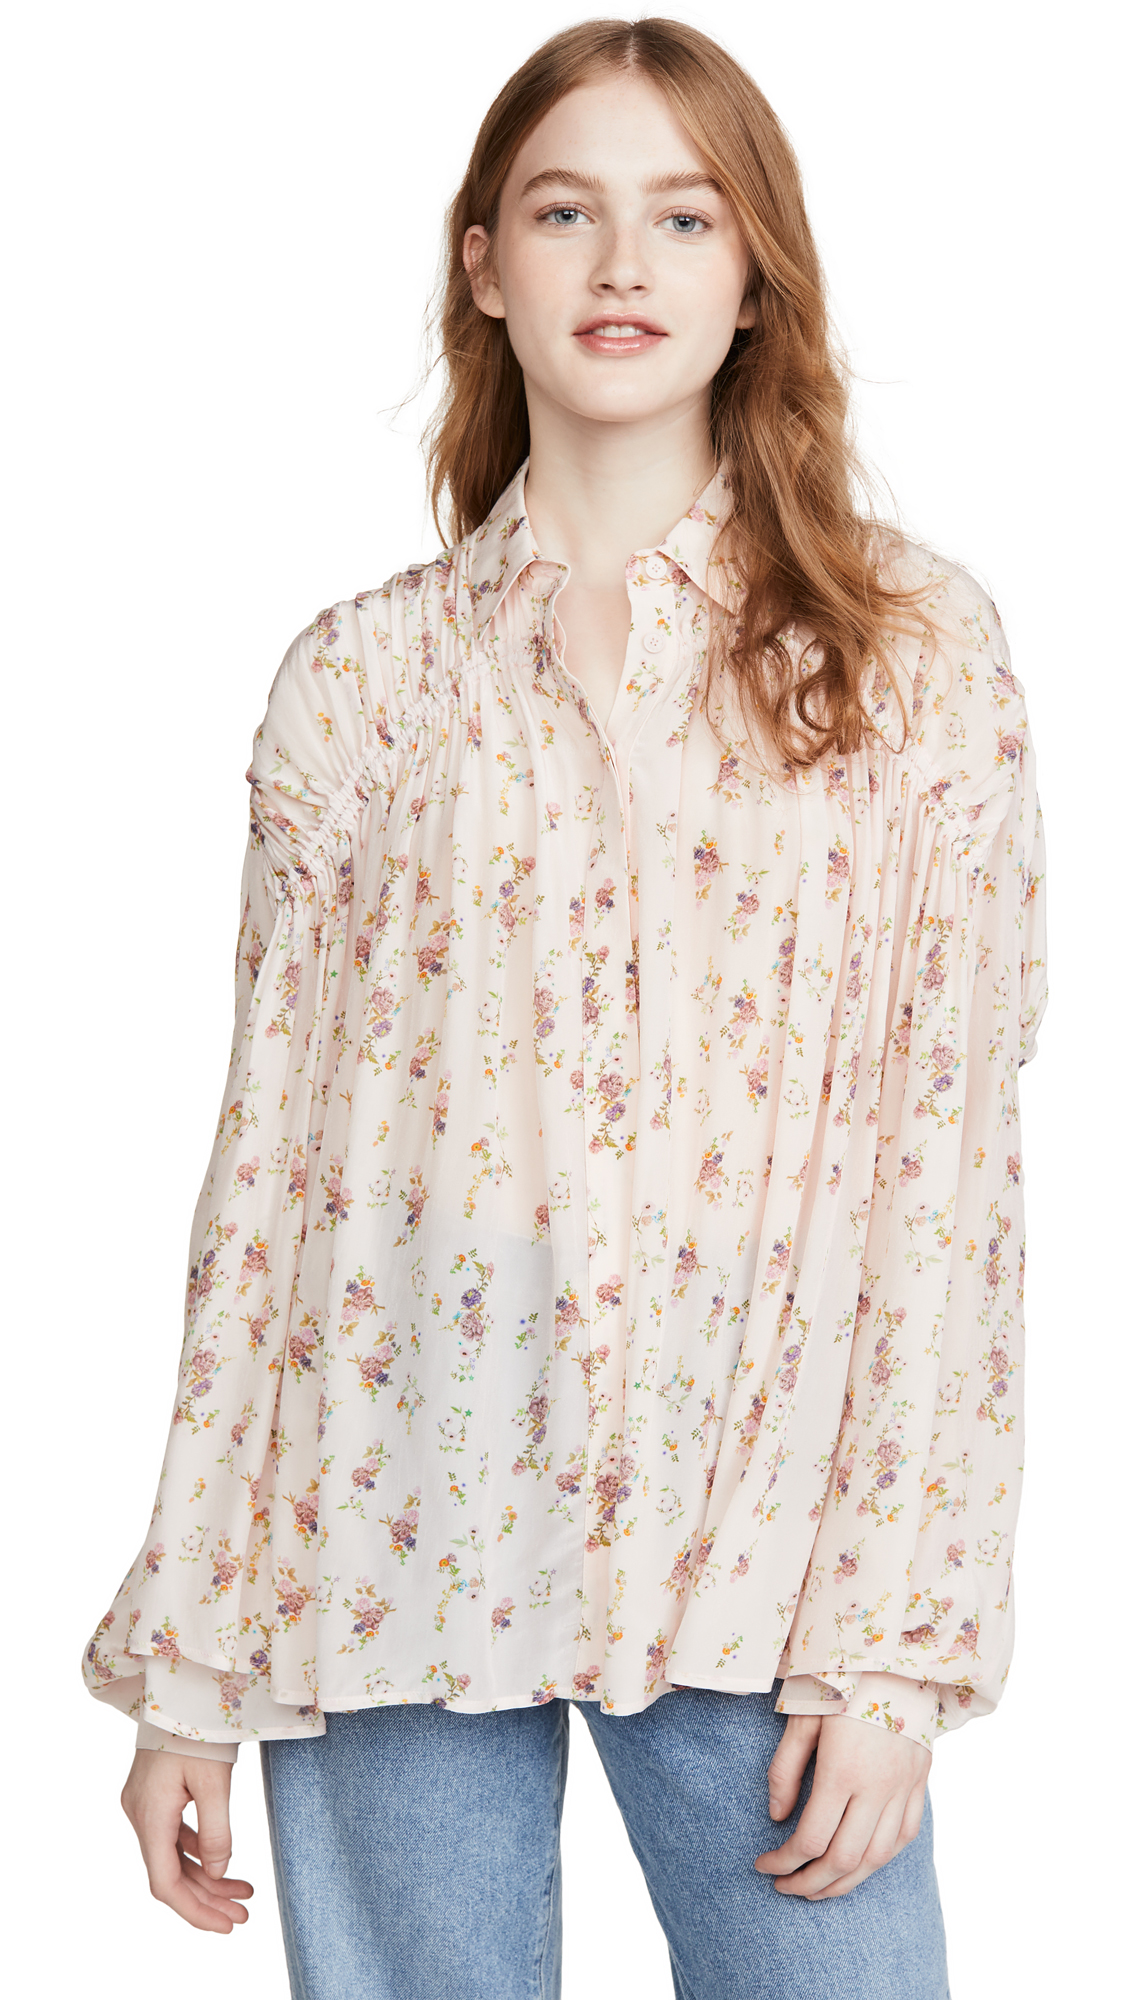 Photo of Preen By Thornton Bregazzi Preen Line Winni Blouse - shop Preen By Thornton Bregazzi Tops, Blouses online